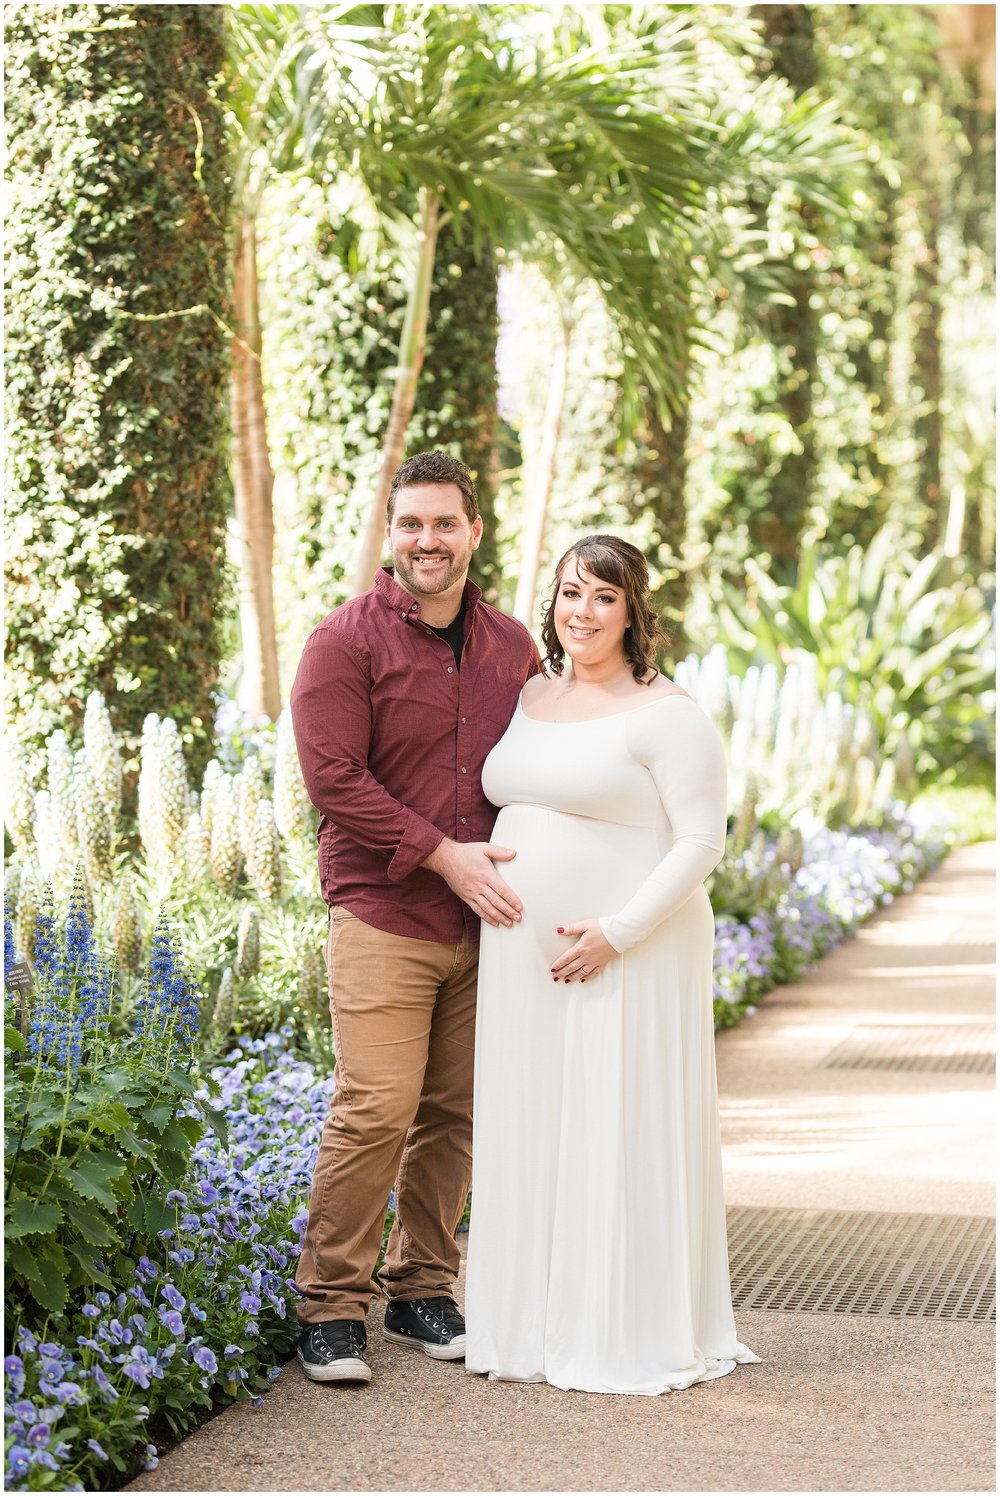 Longwood-gardens-maternity-photos-200.jpg